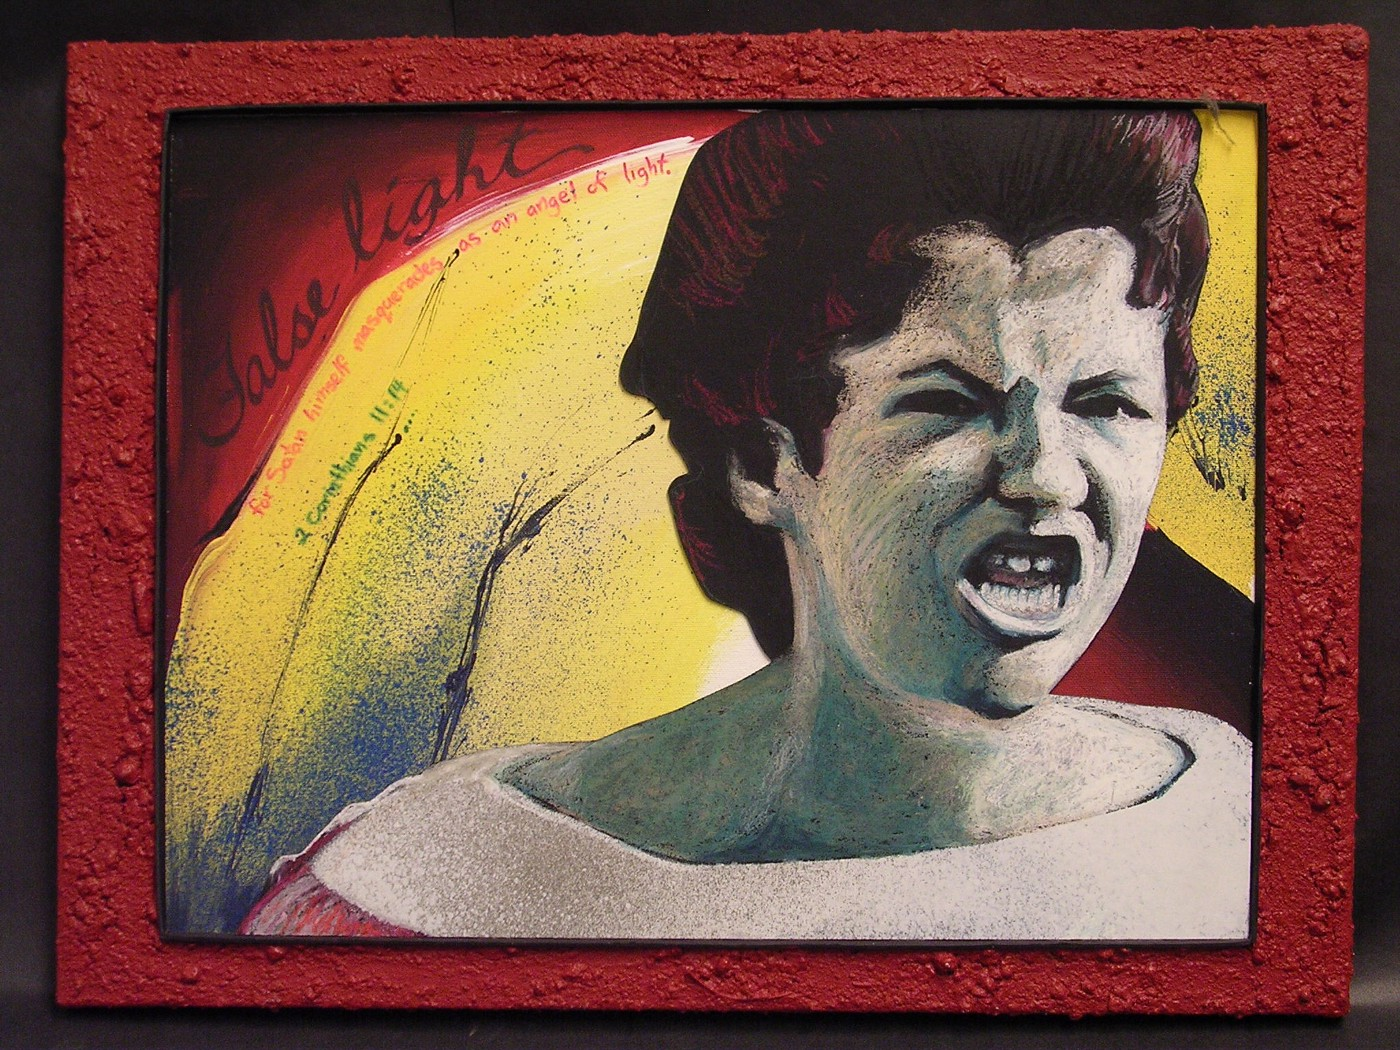 """A harsh color portrait of Hazel Bryan in 1957 as she shouts hateful epithets at Elizabeth Eckford, one of the """"Little House Nine,"""" who attempted to desegregate schools in Arkansas three years after the Supreme Court's 1954 """"Brown v. Board of Education"""" ruling. Hazel's face is contorted with anger and her skin is chalk white against a bright deep red and yellow background within a red frame that has the same rough texture as dredged up topsoil underfoot."""